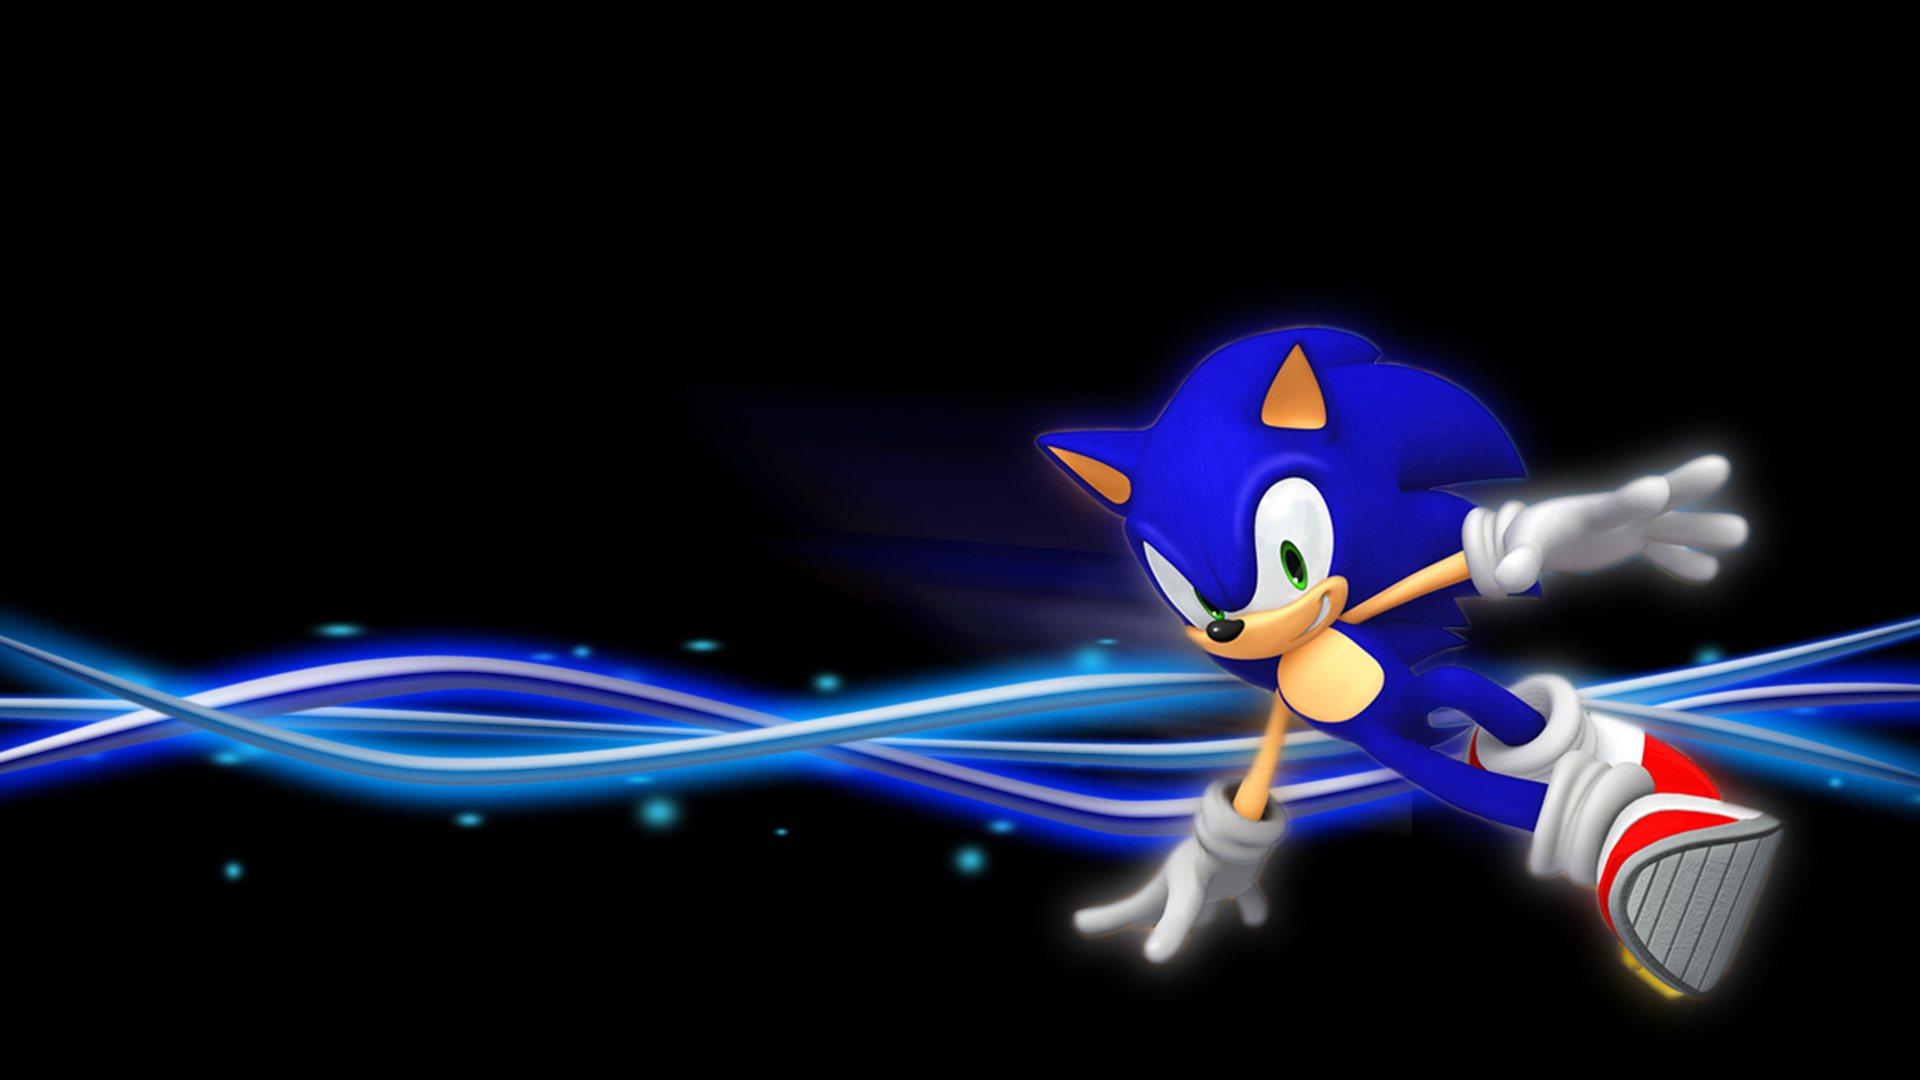 Nintendo Forms Partnership with Sega, Announces Sonic: Lost World